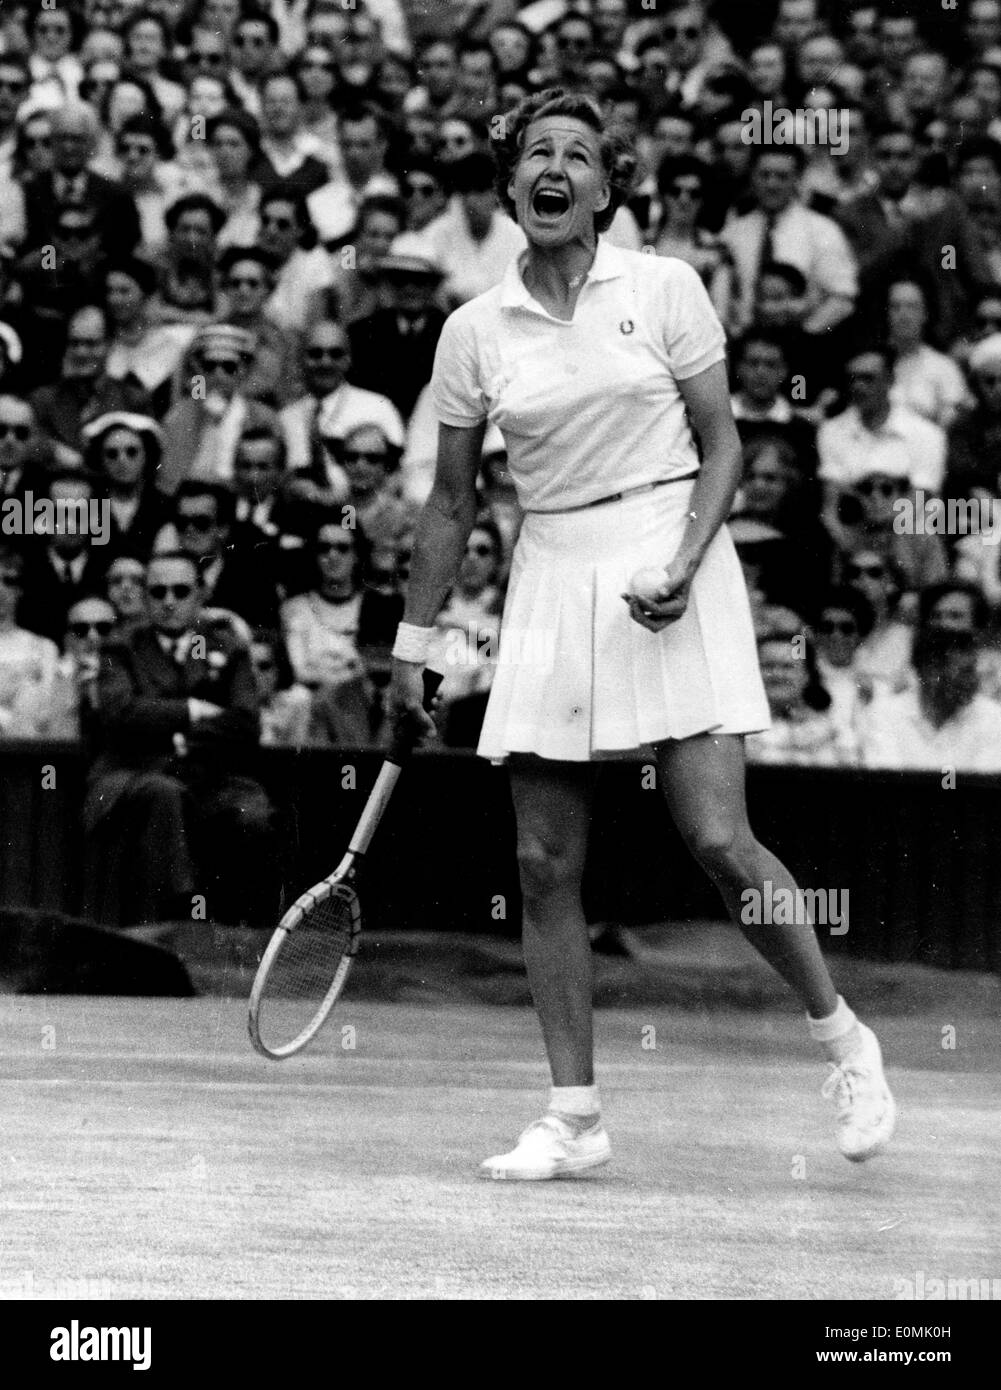 Tennis Champ Louise Brough during a match at Wimbledon Stock